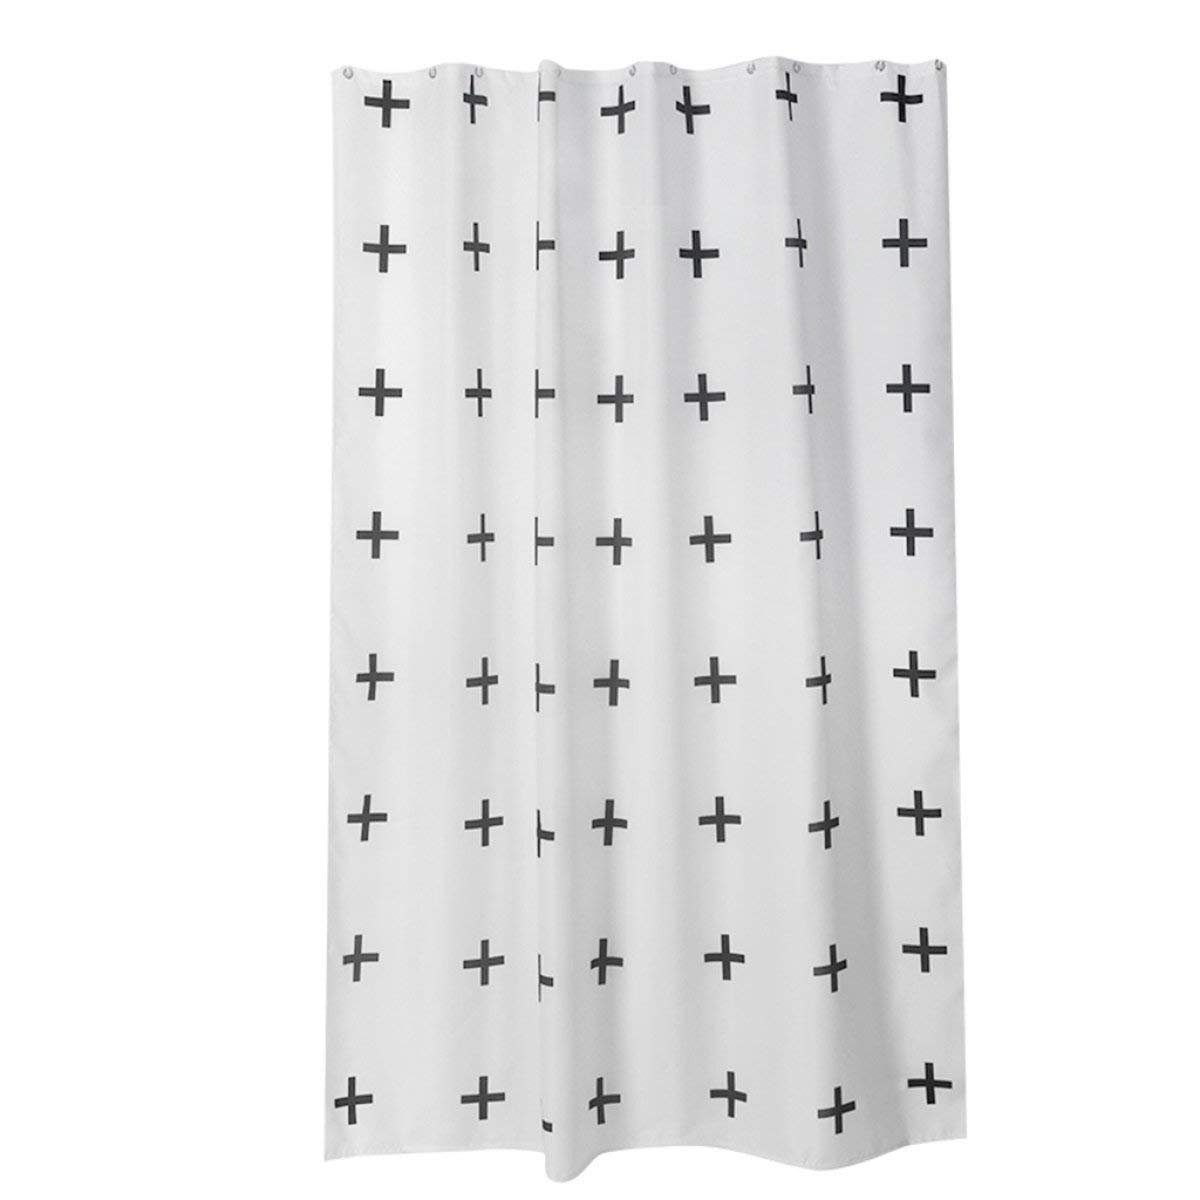 Der Cross-Thickening Opaque Polyester Baths Free Punched Shower Curtains Waterproof Non-Toxic Environmental Bacteria Heavy Duty Metal Grommets Bathroom Accessories (Size : 200cm200cm)